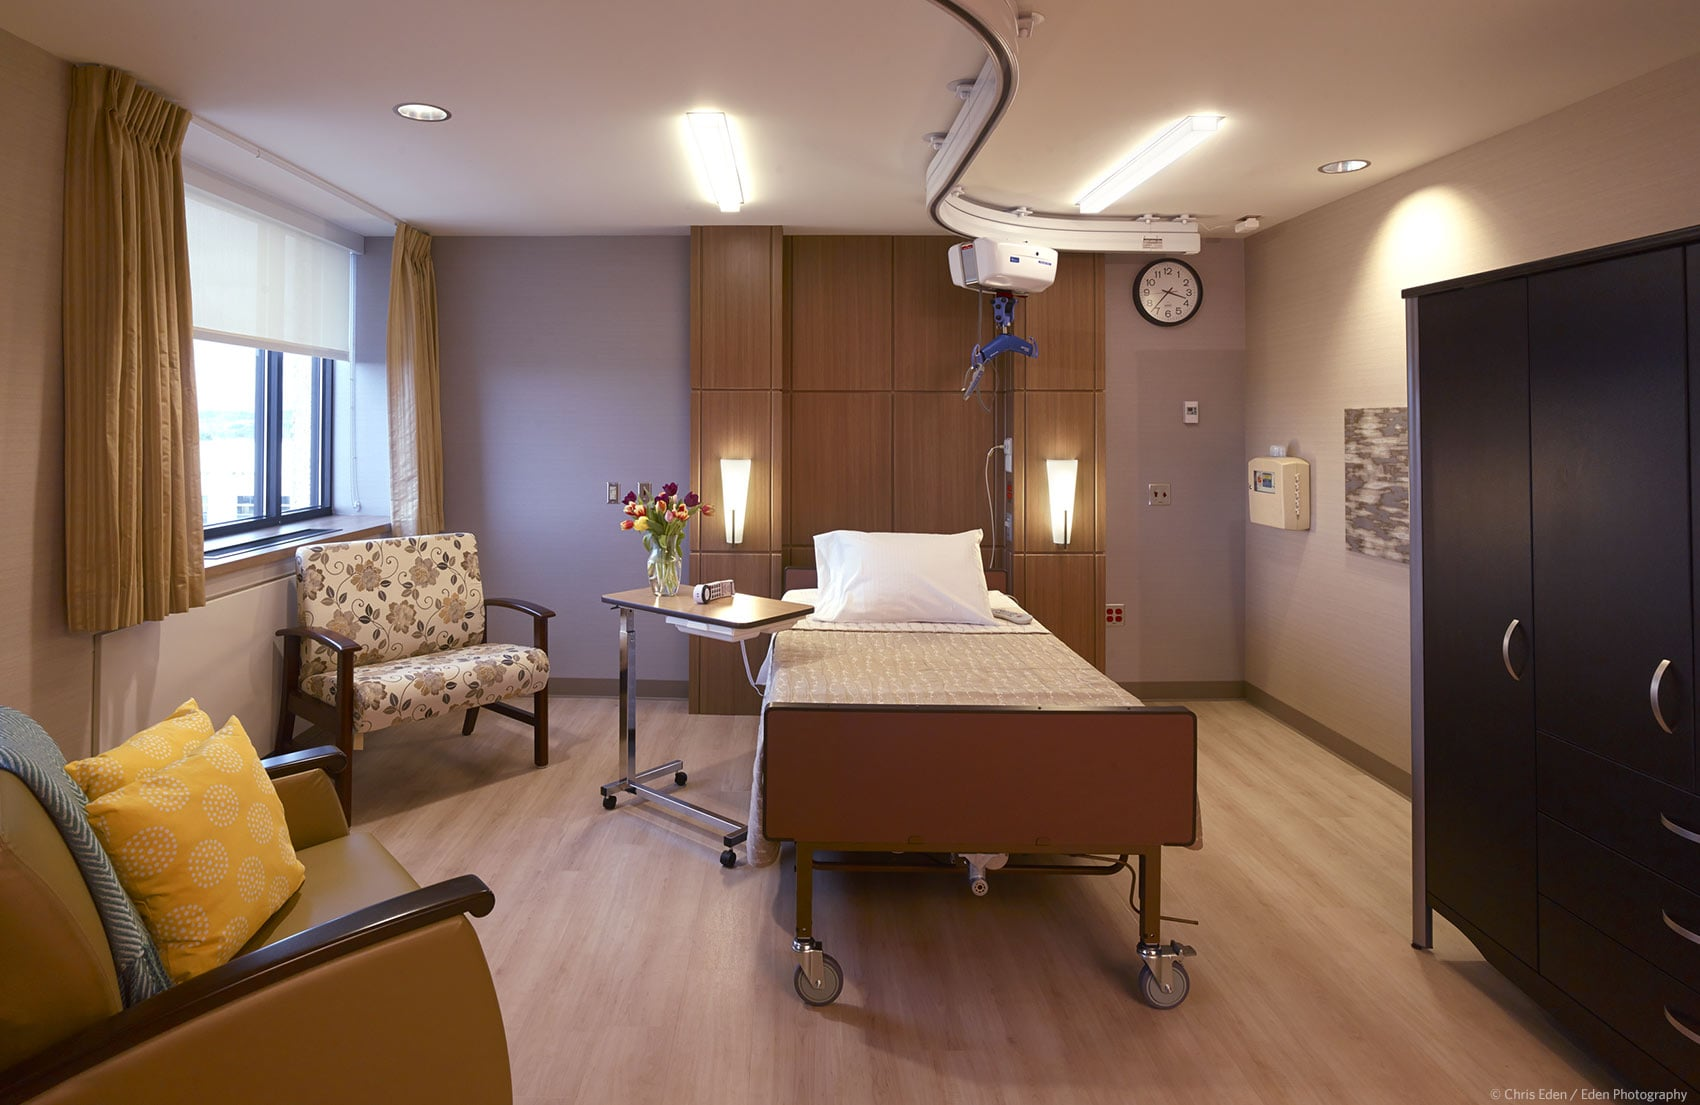 Client: MG2 - Providence Hospice - Patient room